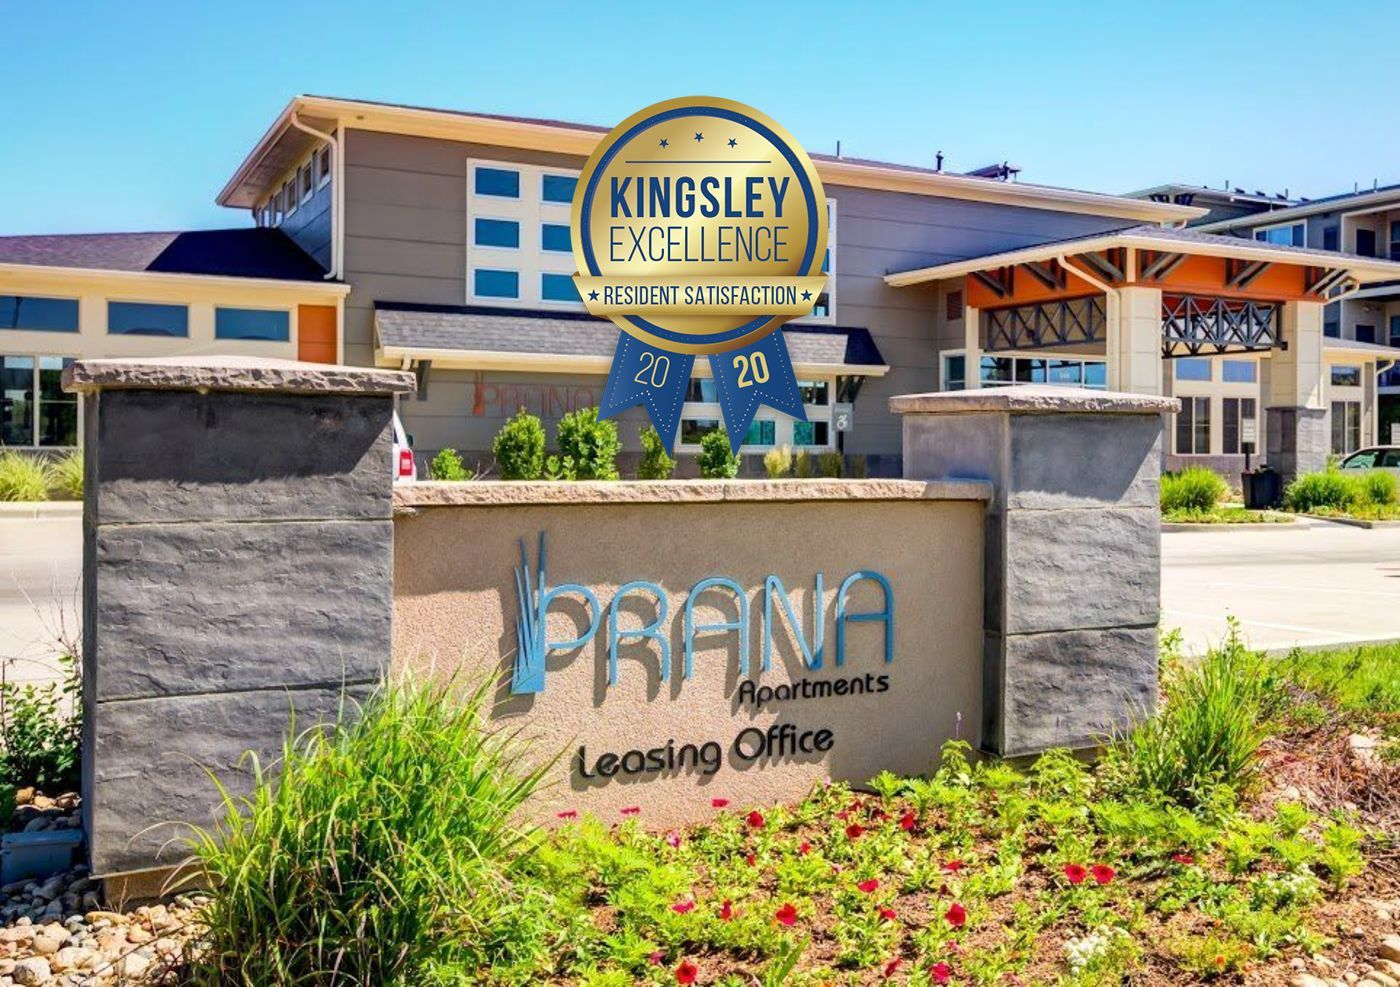 Prana Apartment Homes - Image of the front entrance monument sign with a Kingsley Excellence award graphic logo overlayed.